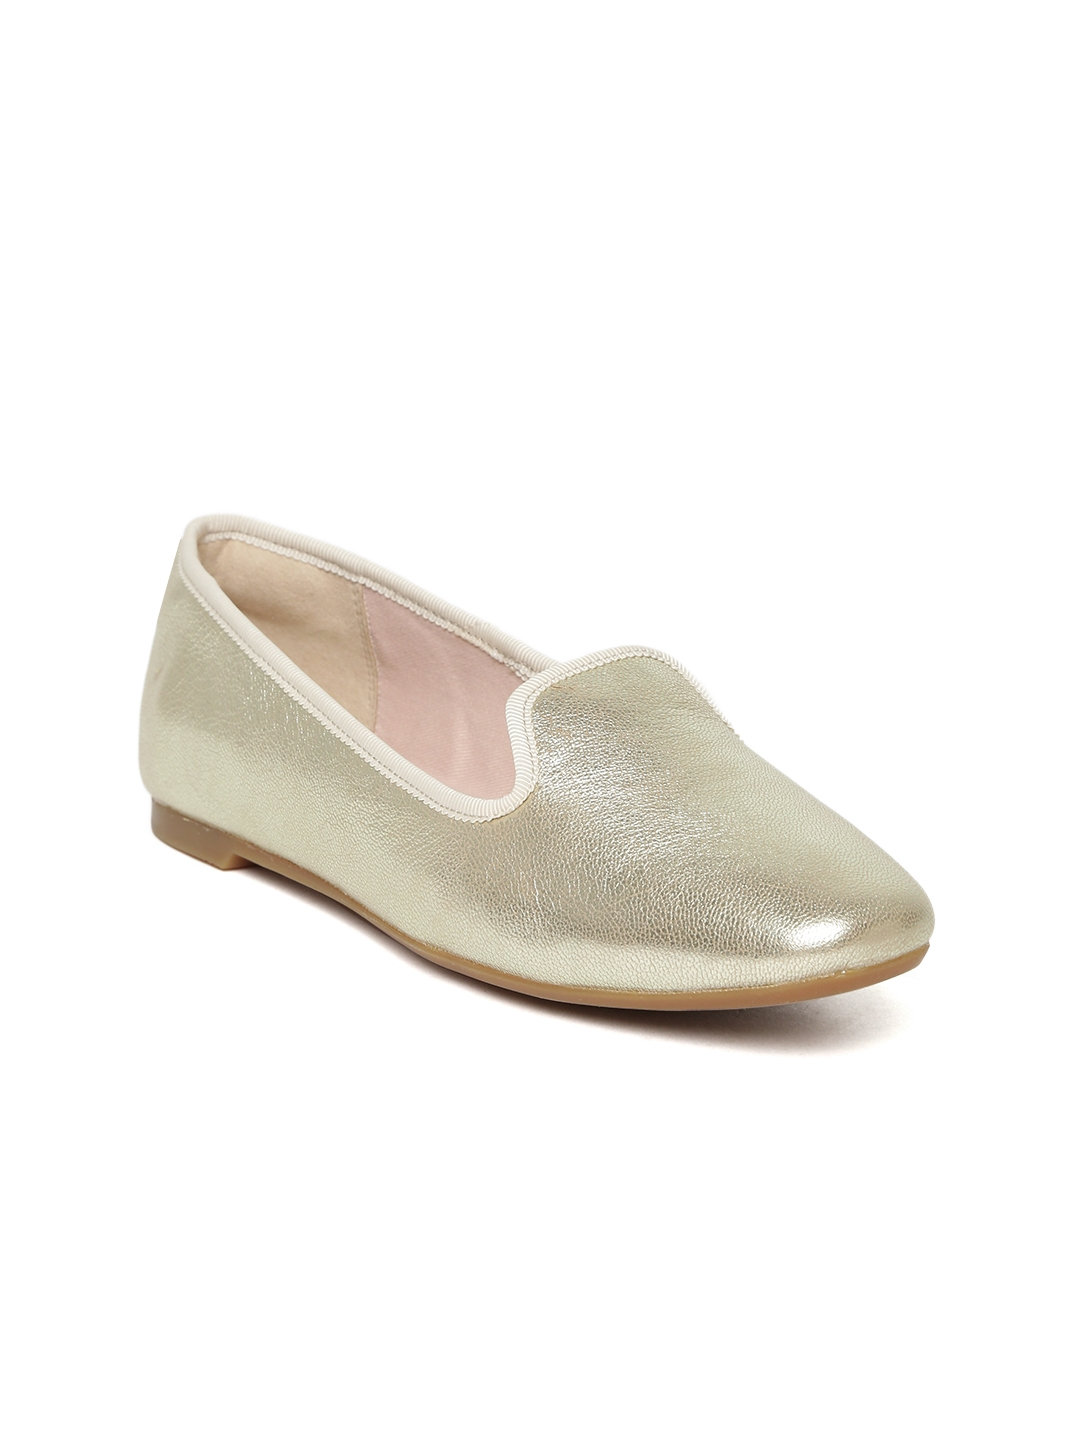 74d9f28c696 Buy Clarks Women Gold Toned Solid Leather Ballerinas - Flats for ...